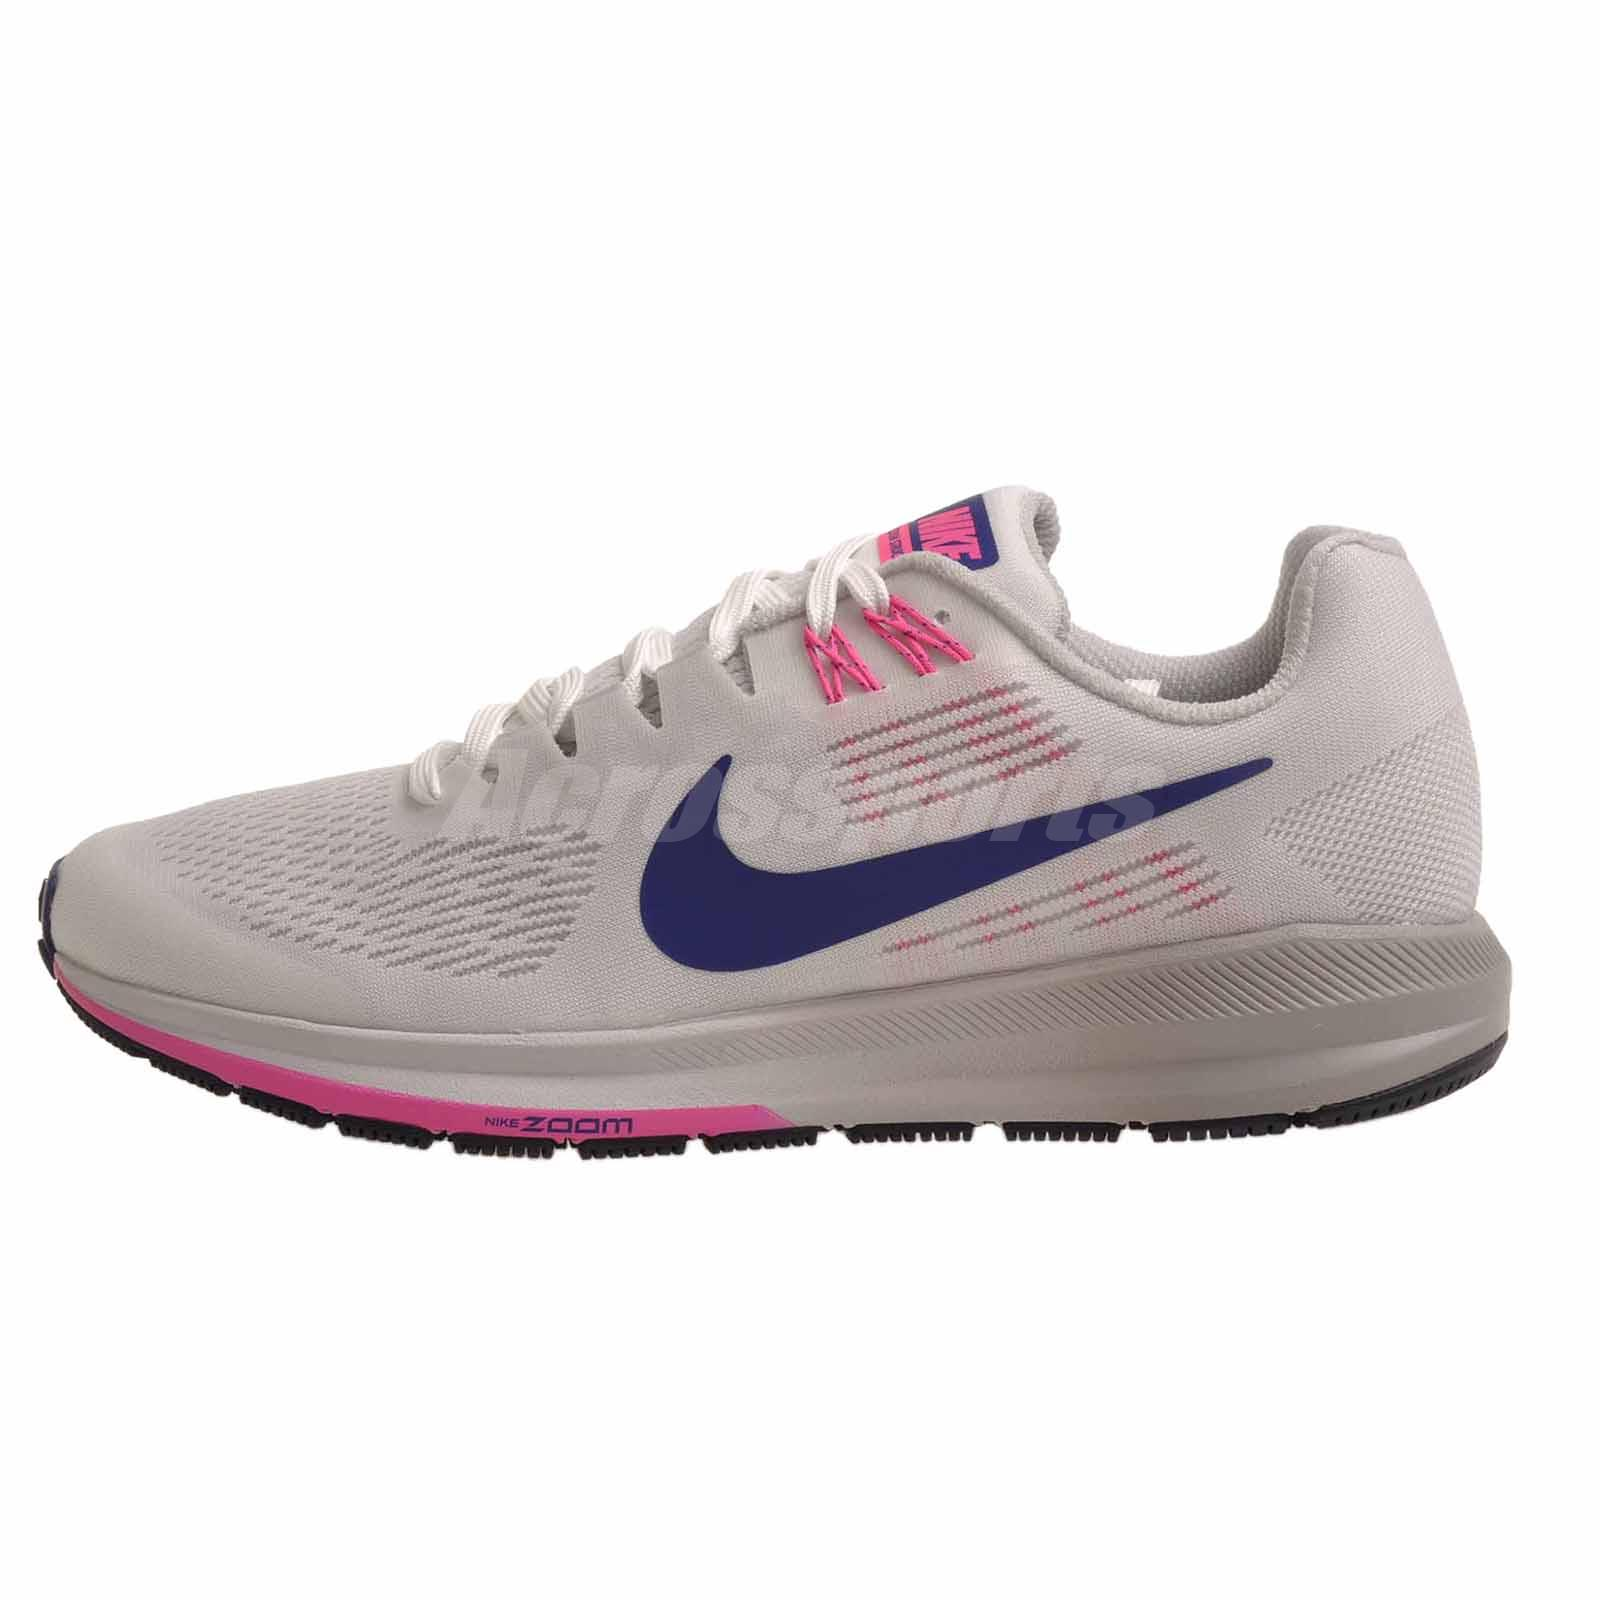 0a3865df754 Details about Nike W Air Zoom Structure 21 Running Womens Shoes Summit  White 904701-101